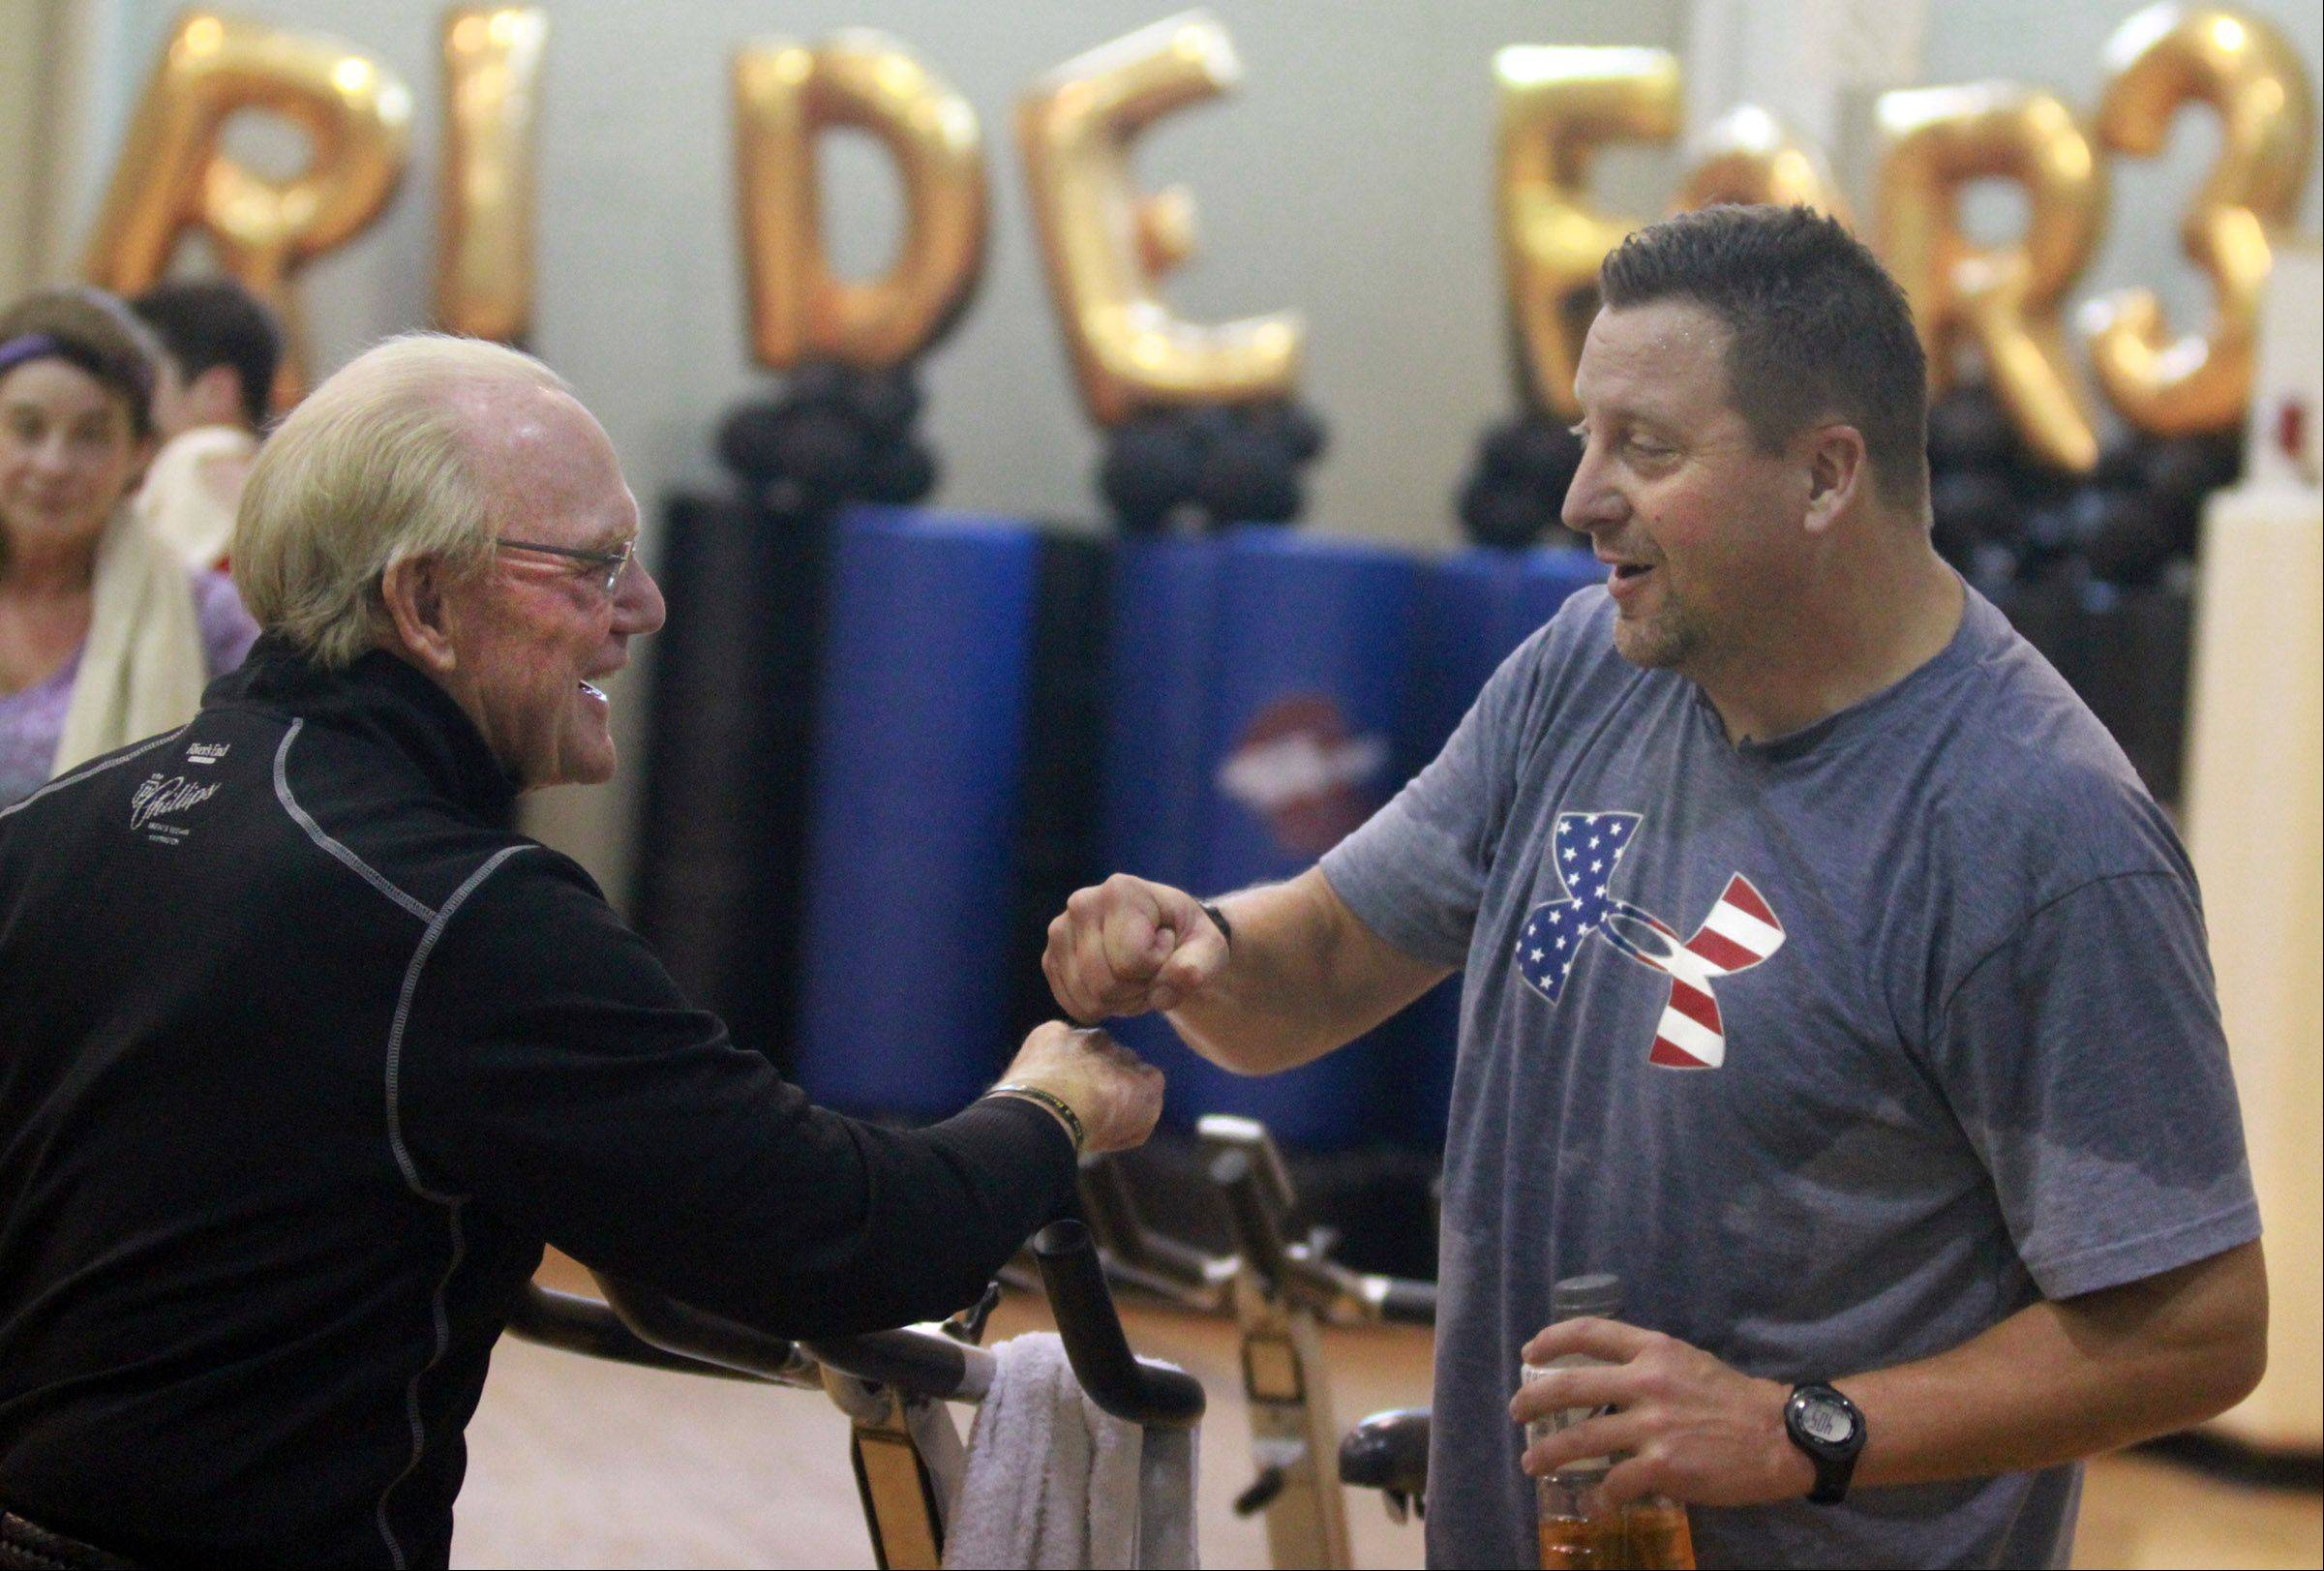 Bicyclist Bob Lee, 70, left, gets a fist bump from Thom Rosen, both of Barrington, after a one-hour stationary cycle fundraiser class, just before a welcome home reception for Lee at Good Shepherd Health and Fitness Center in Barrington Saturday.